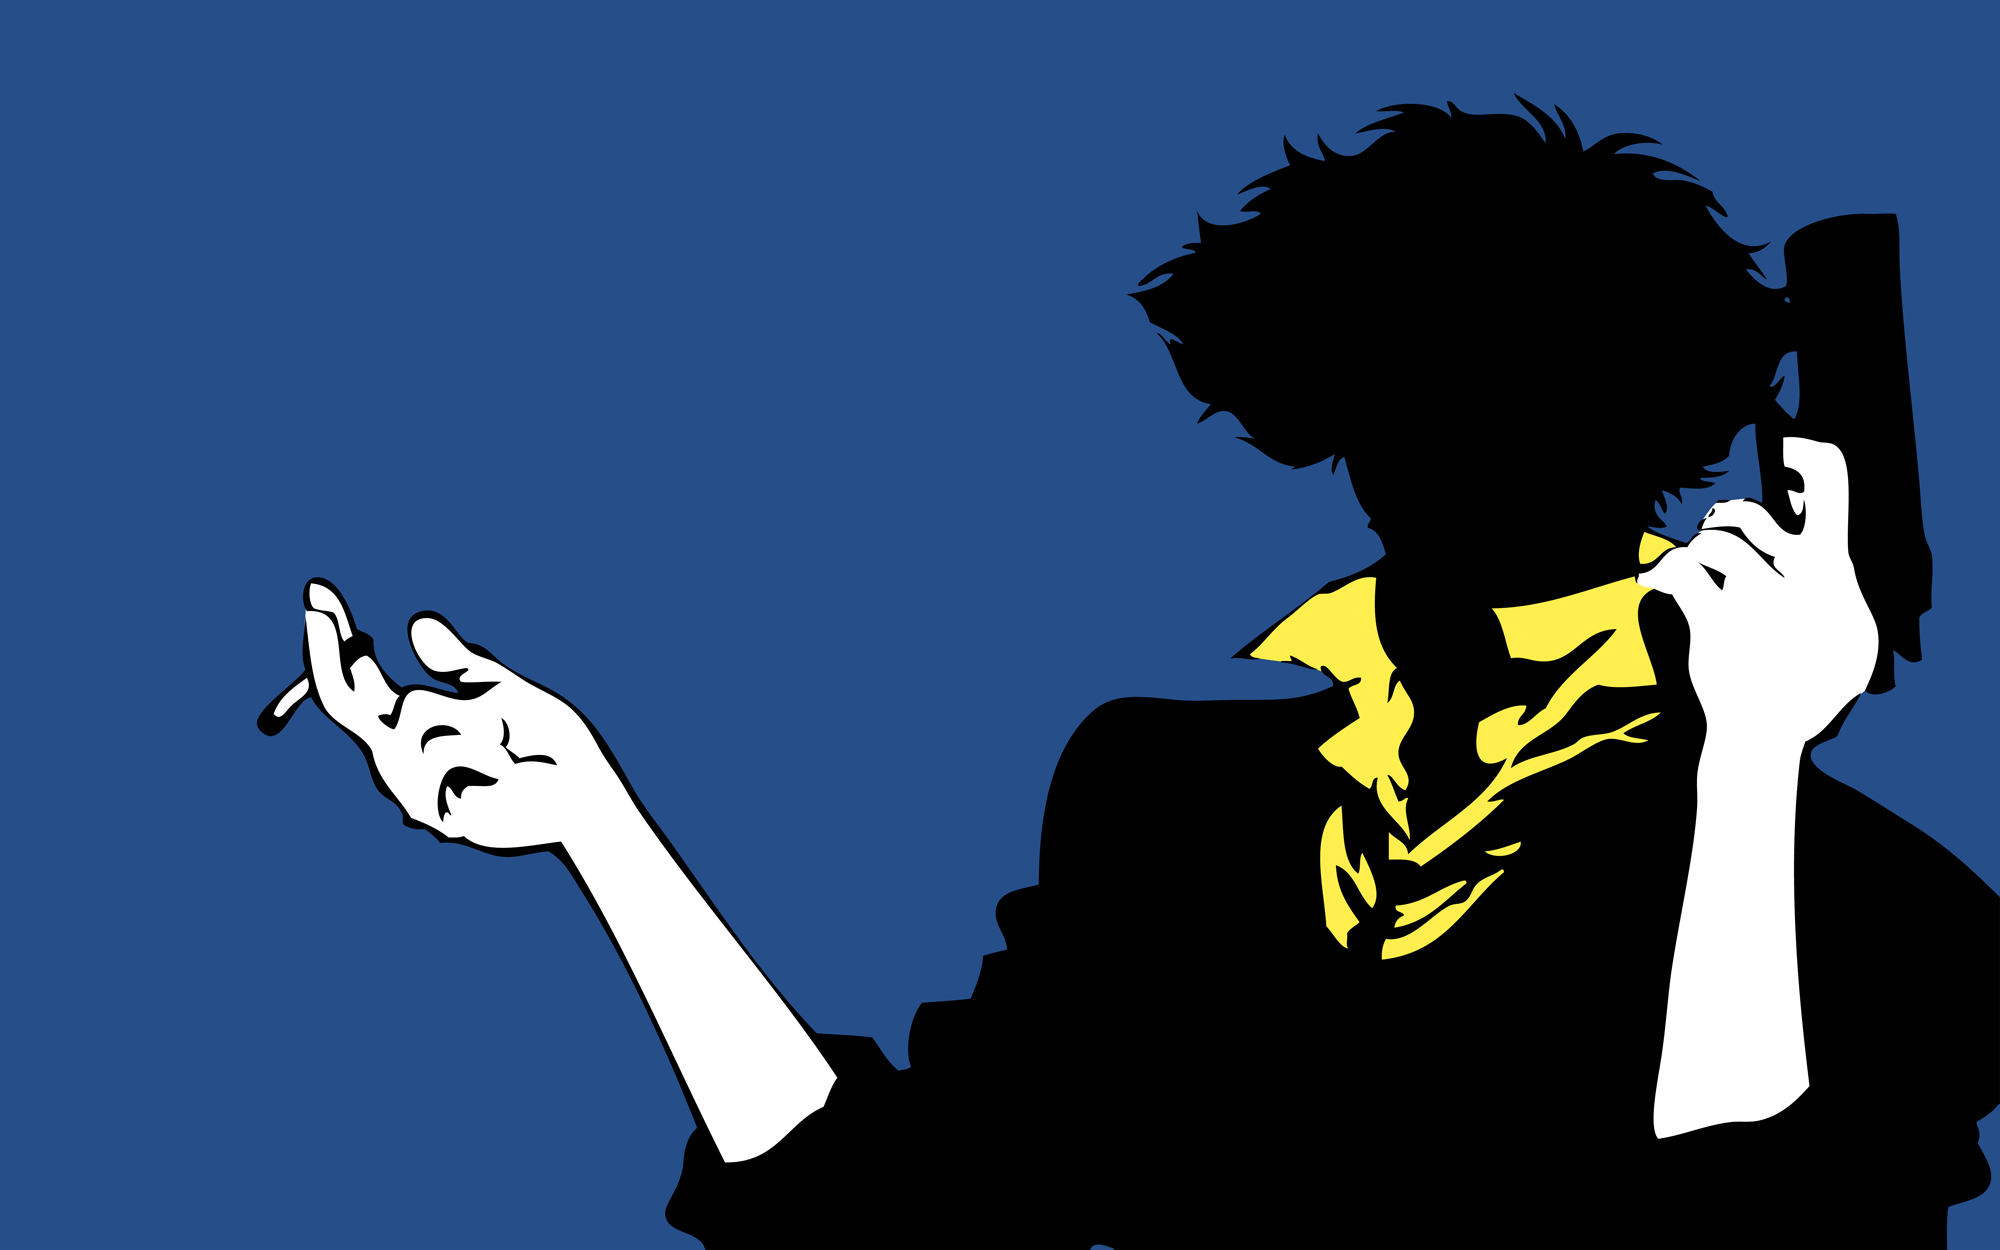 Cowboy Bebop Wallpaper 18877 Wallpaper high quality Backgrounds for 2000x1250